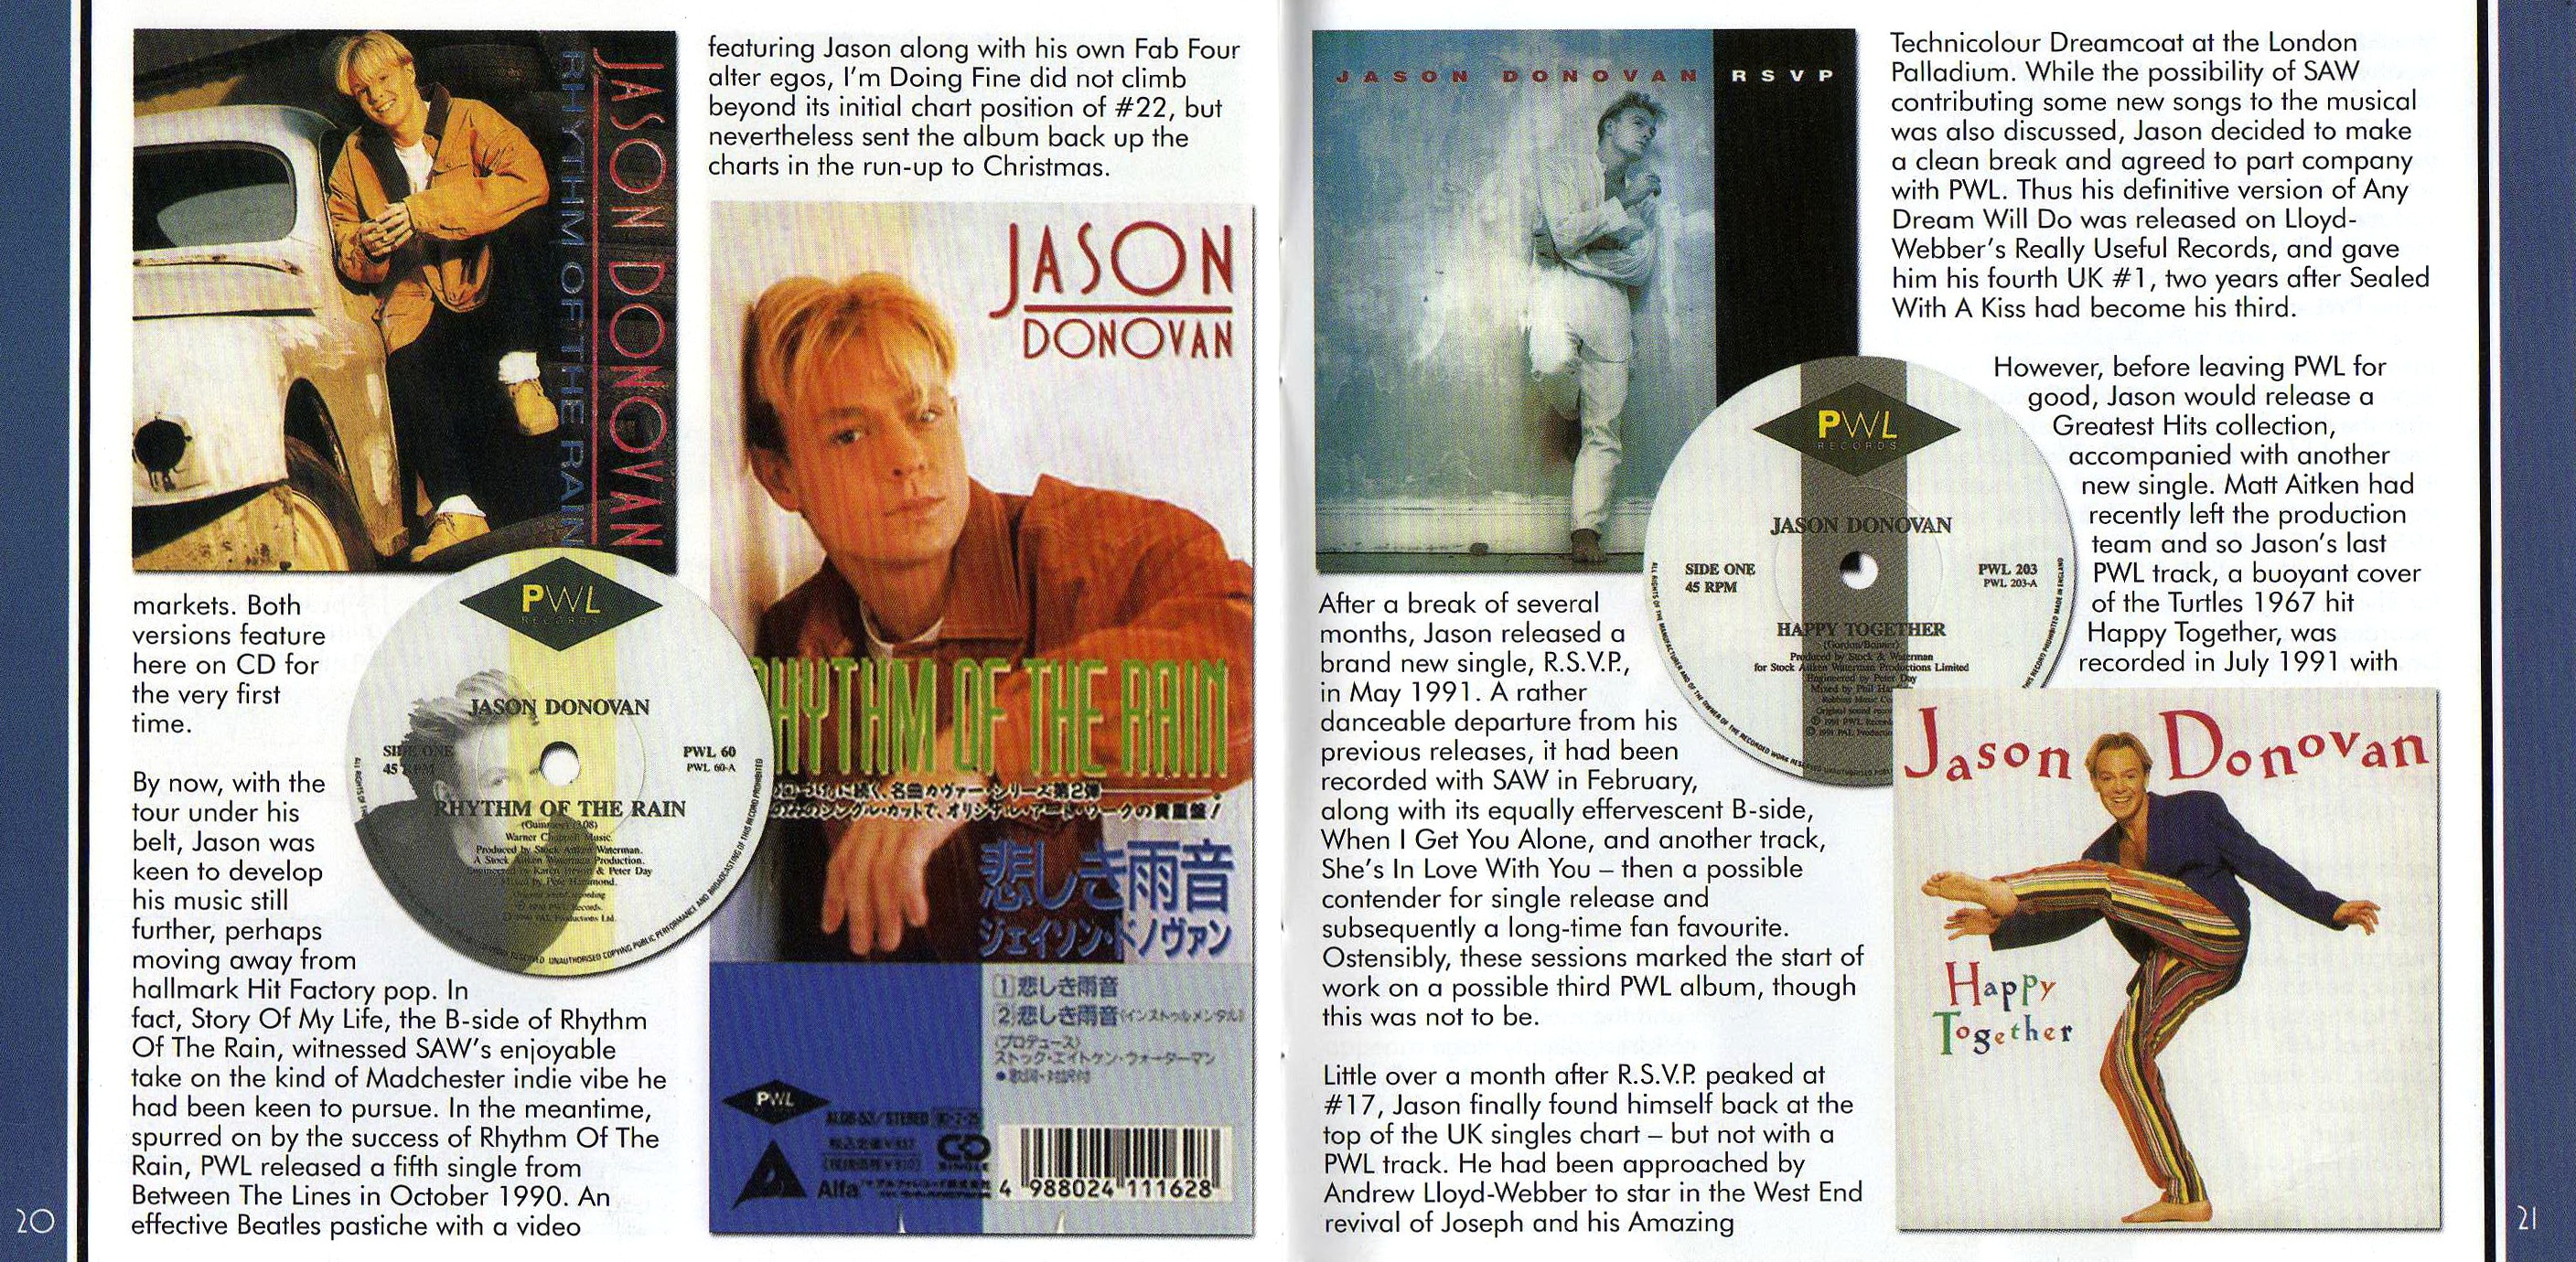 Jason Donovan - Between The Lines - Booklet (10-11)